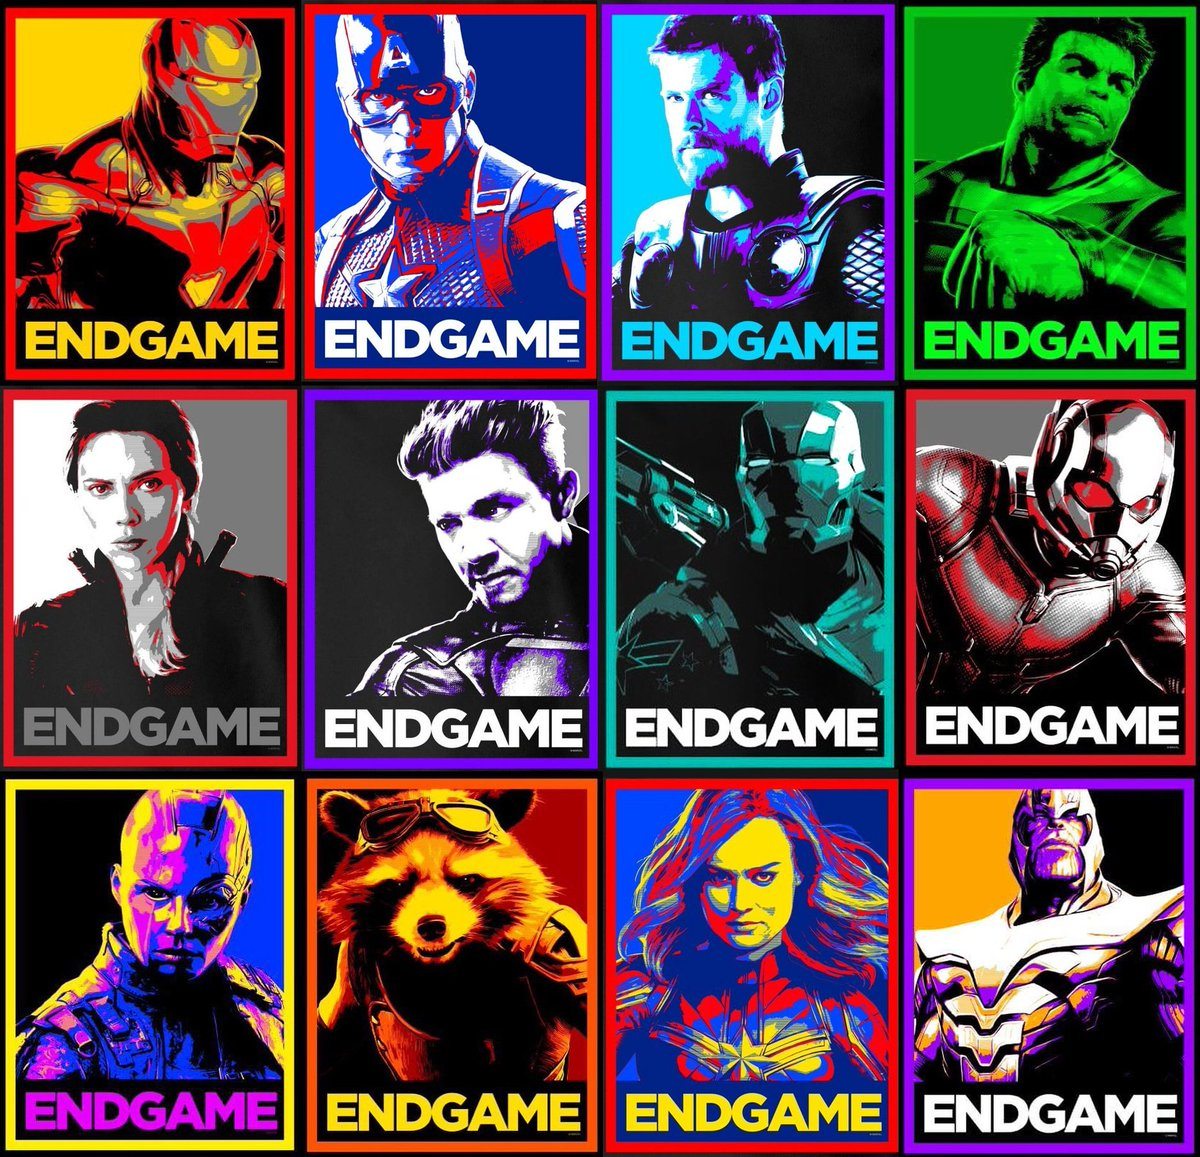 Mcu Direct On Twitter A Set Of New Avengersendgame Official Promo